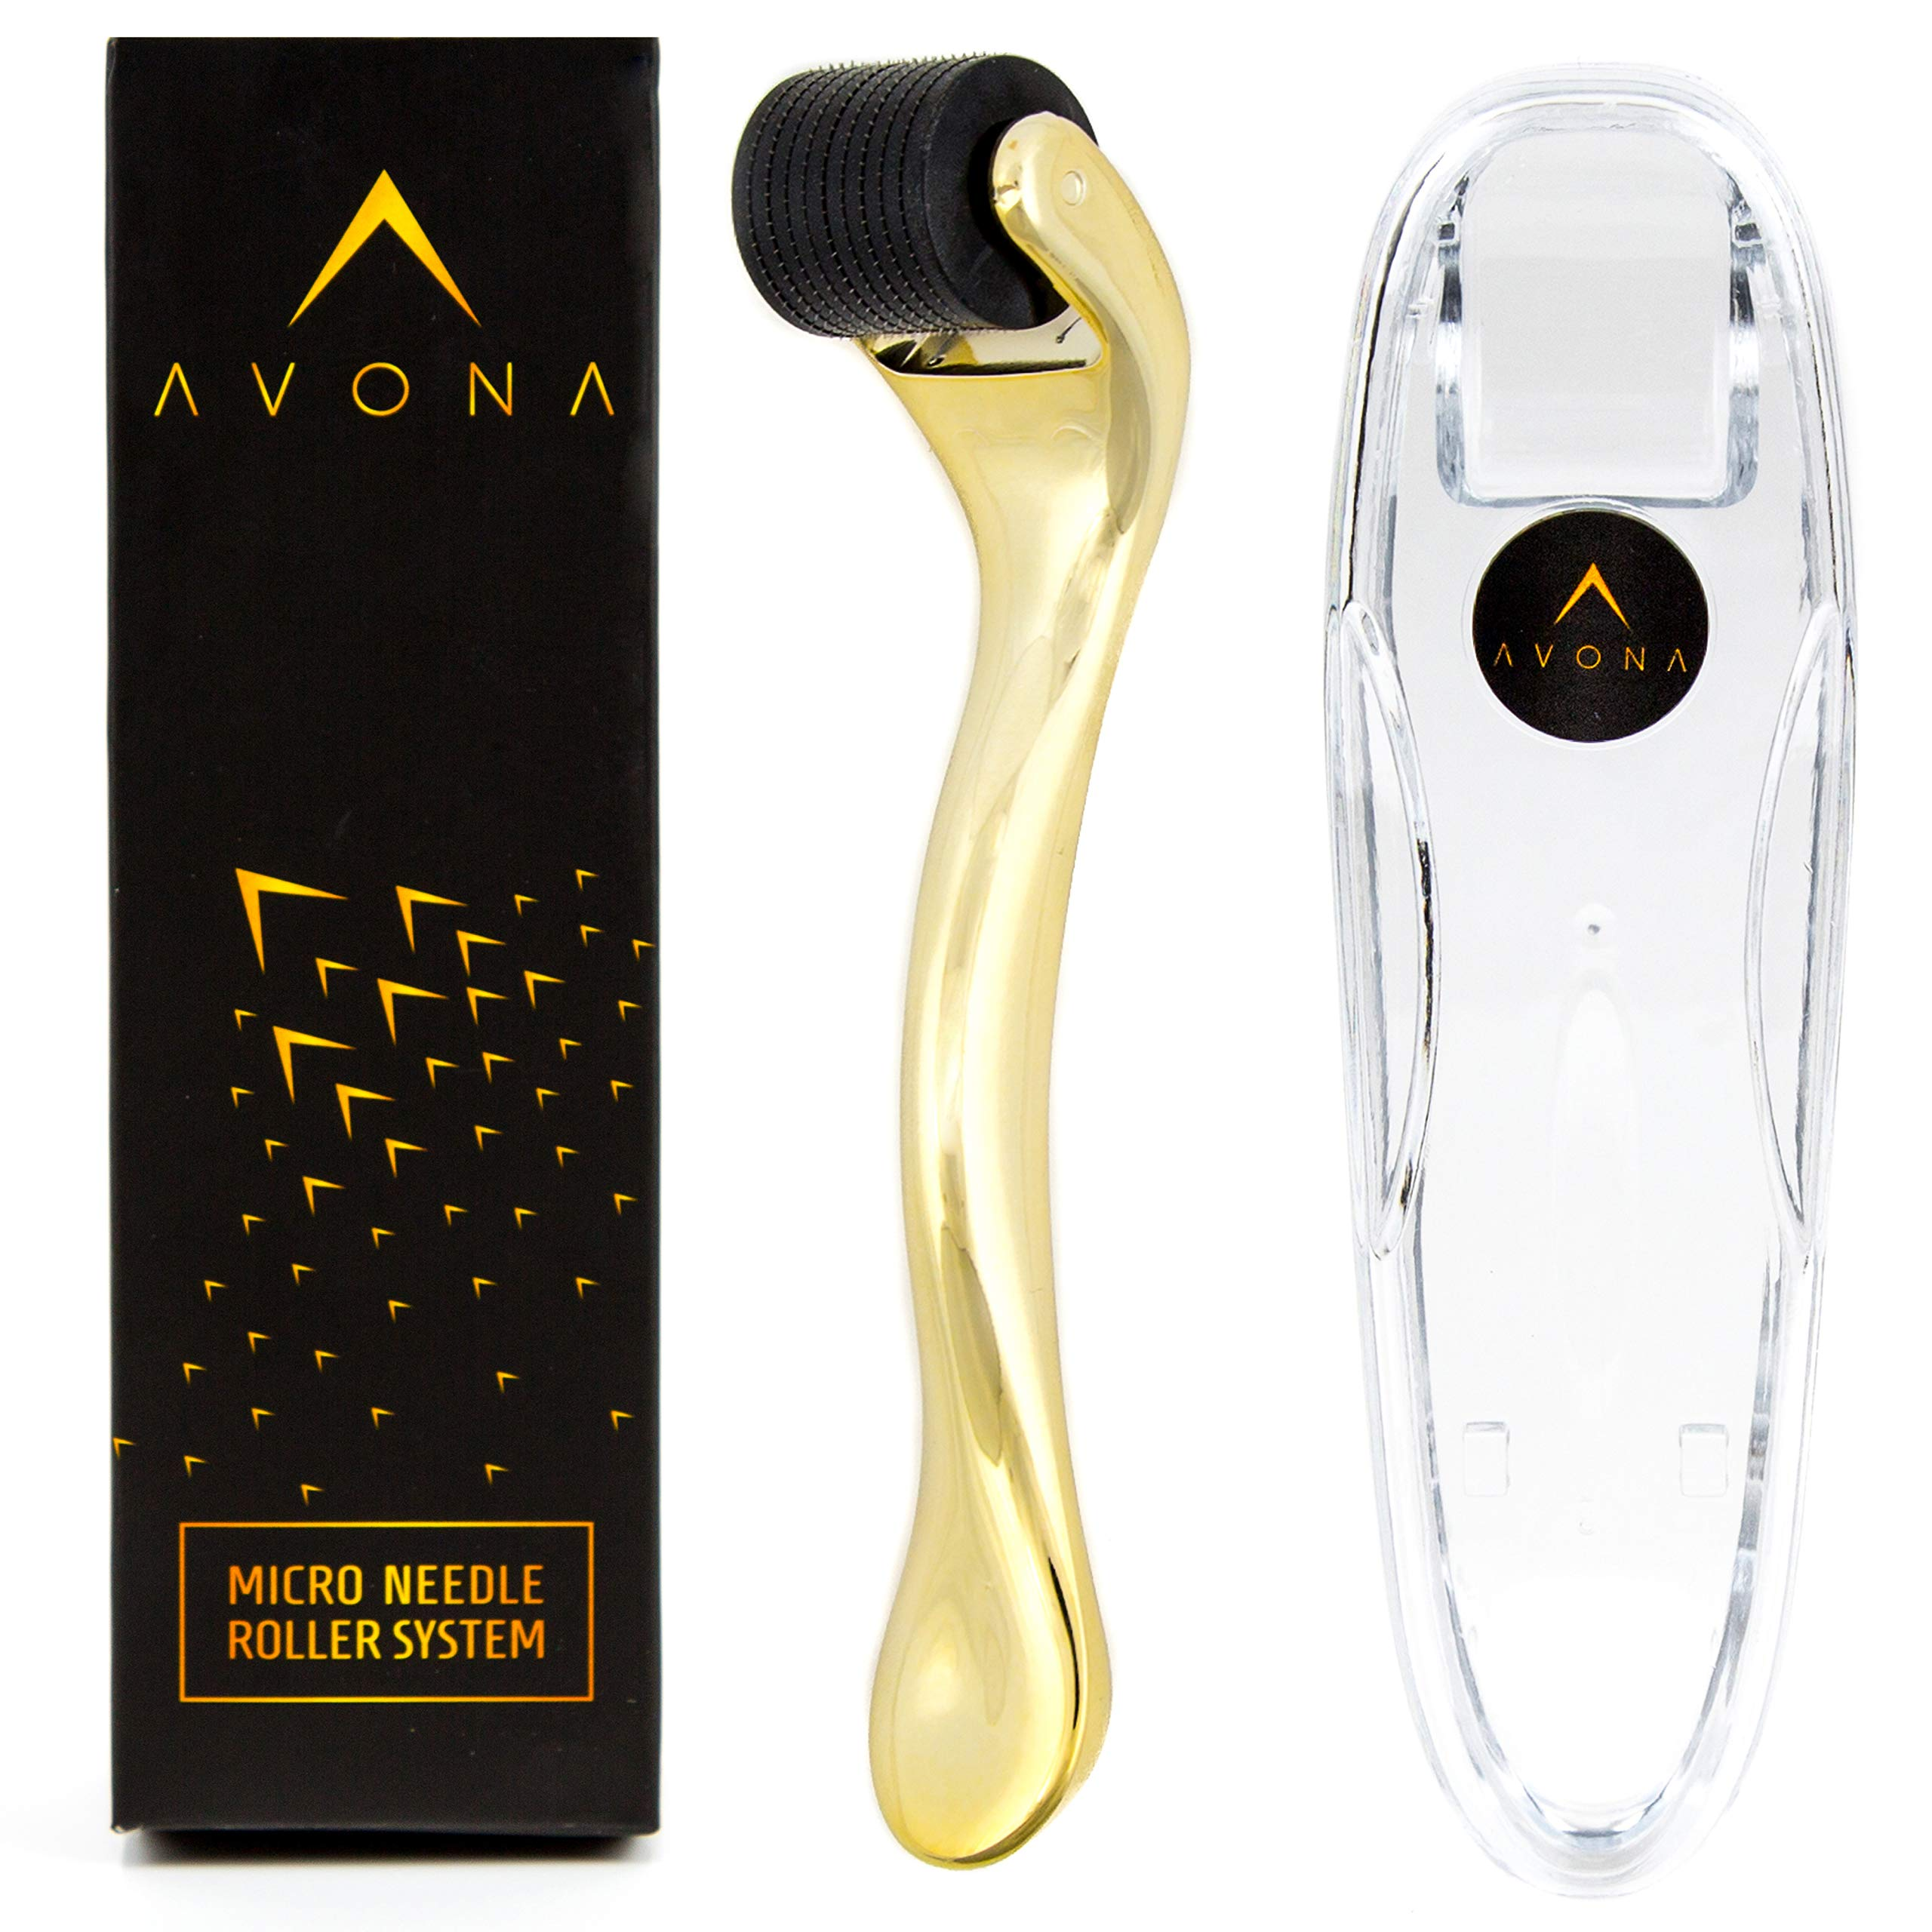 Best Derma Roller For Men and Women - 540 .25mm Titanium MicroNeedle - Exfoliating Cosmetic Skin Care Kit with Protective Case- by Avona